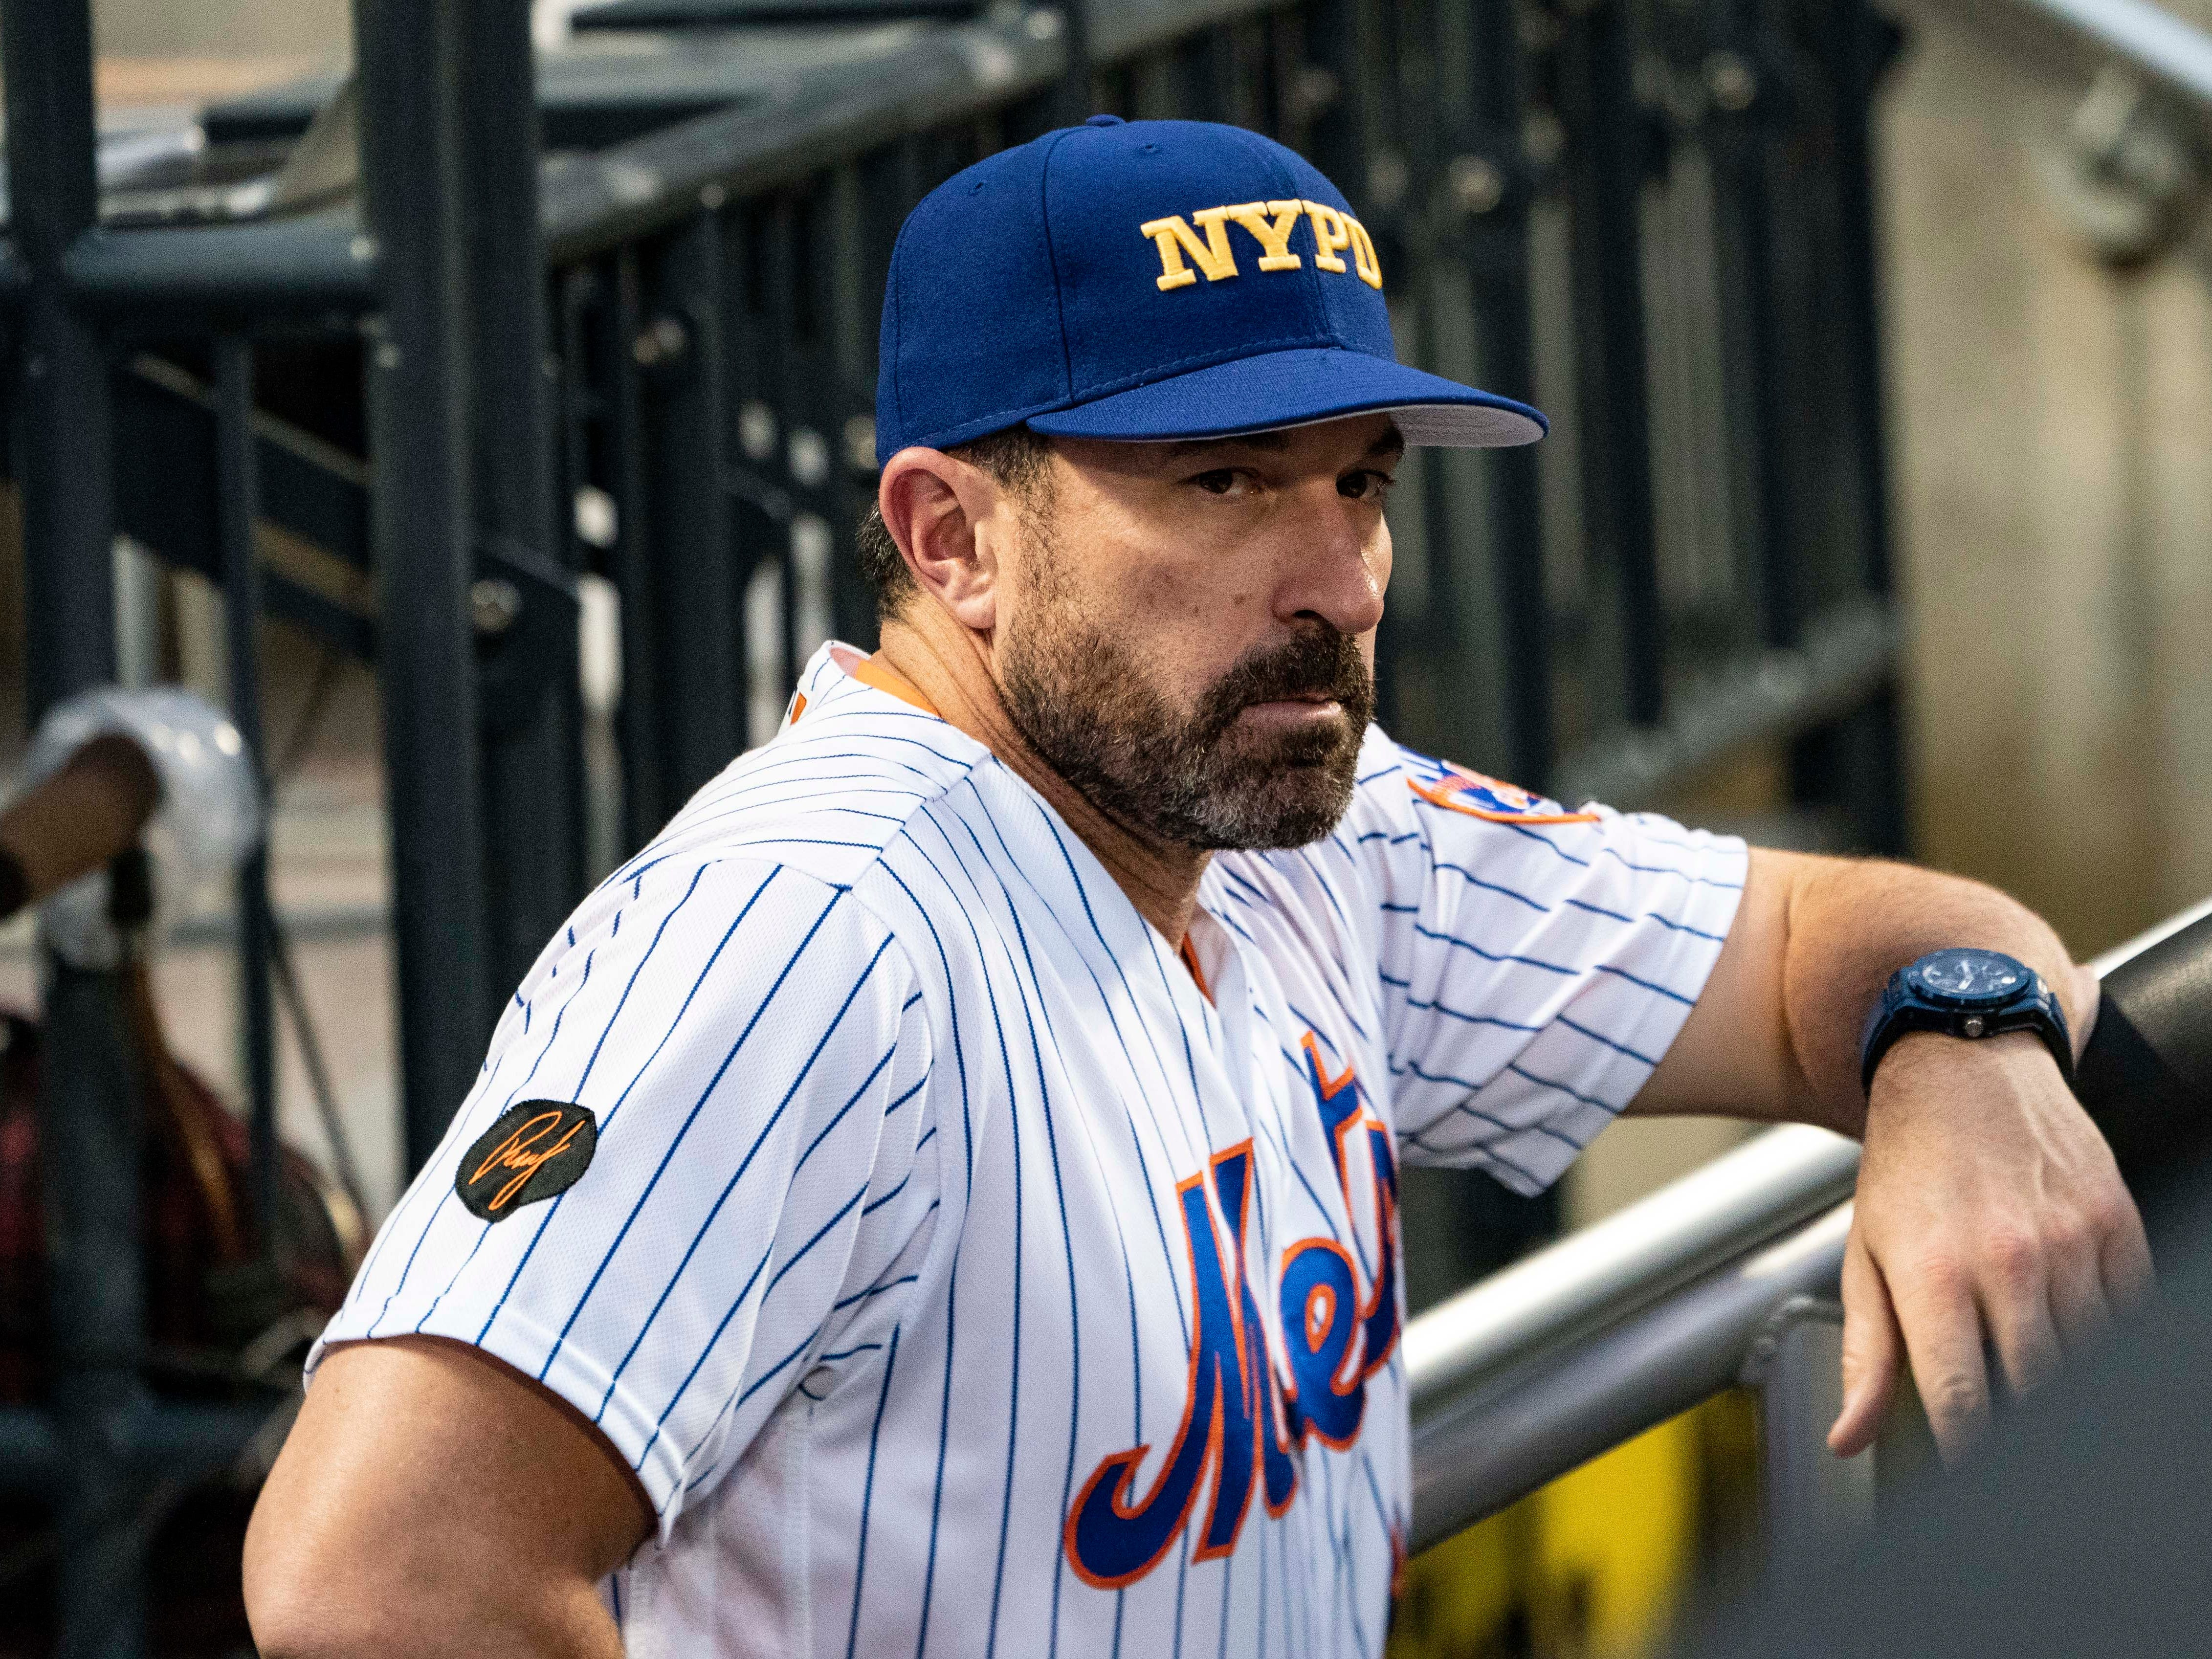 Sep 11, 2018; New York City, NY, USA; New York Mets manager Mickey Callaway (36) wears a NYPD cap to honor  and remember September 11, 2001 during the first inning of the game at Citi Field.